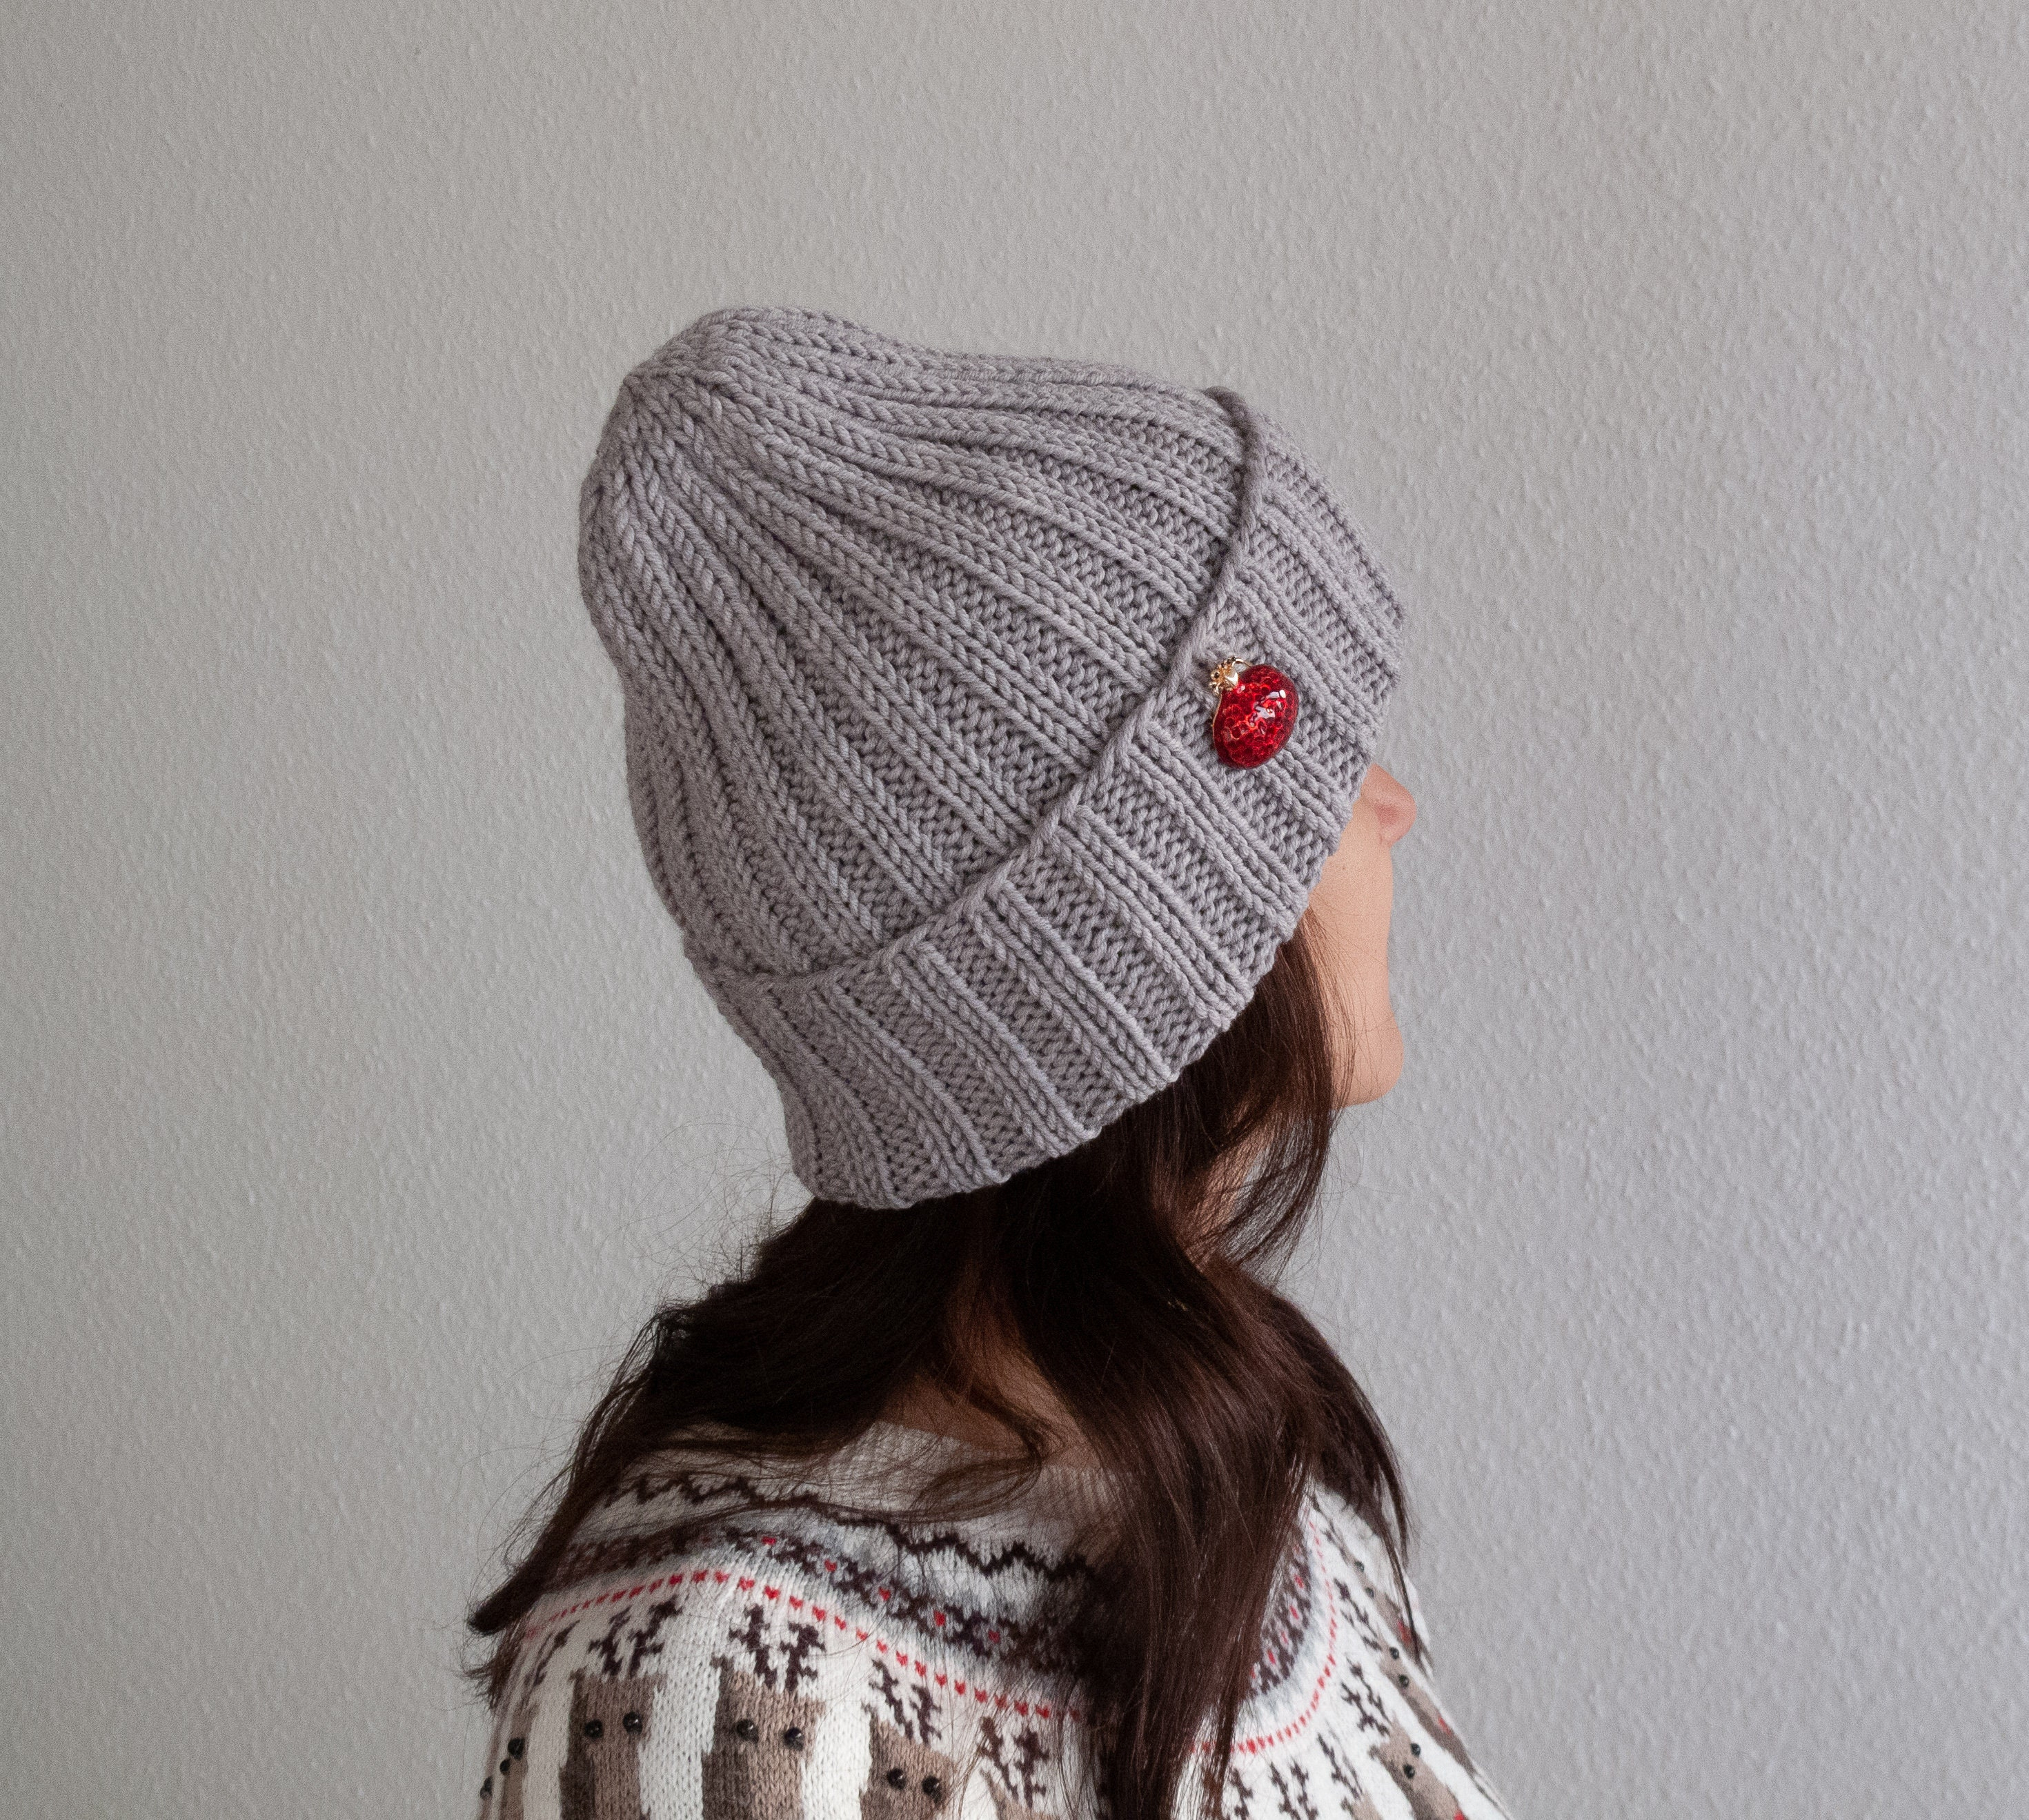 901bef8ed9779f Hand knit winter hat for women Simple light grey knit hat   Etsy